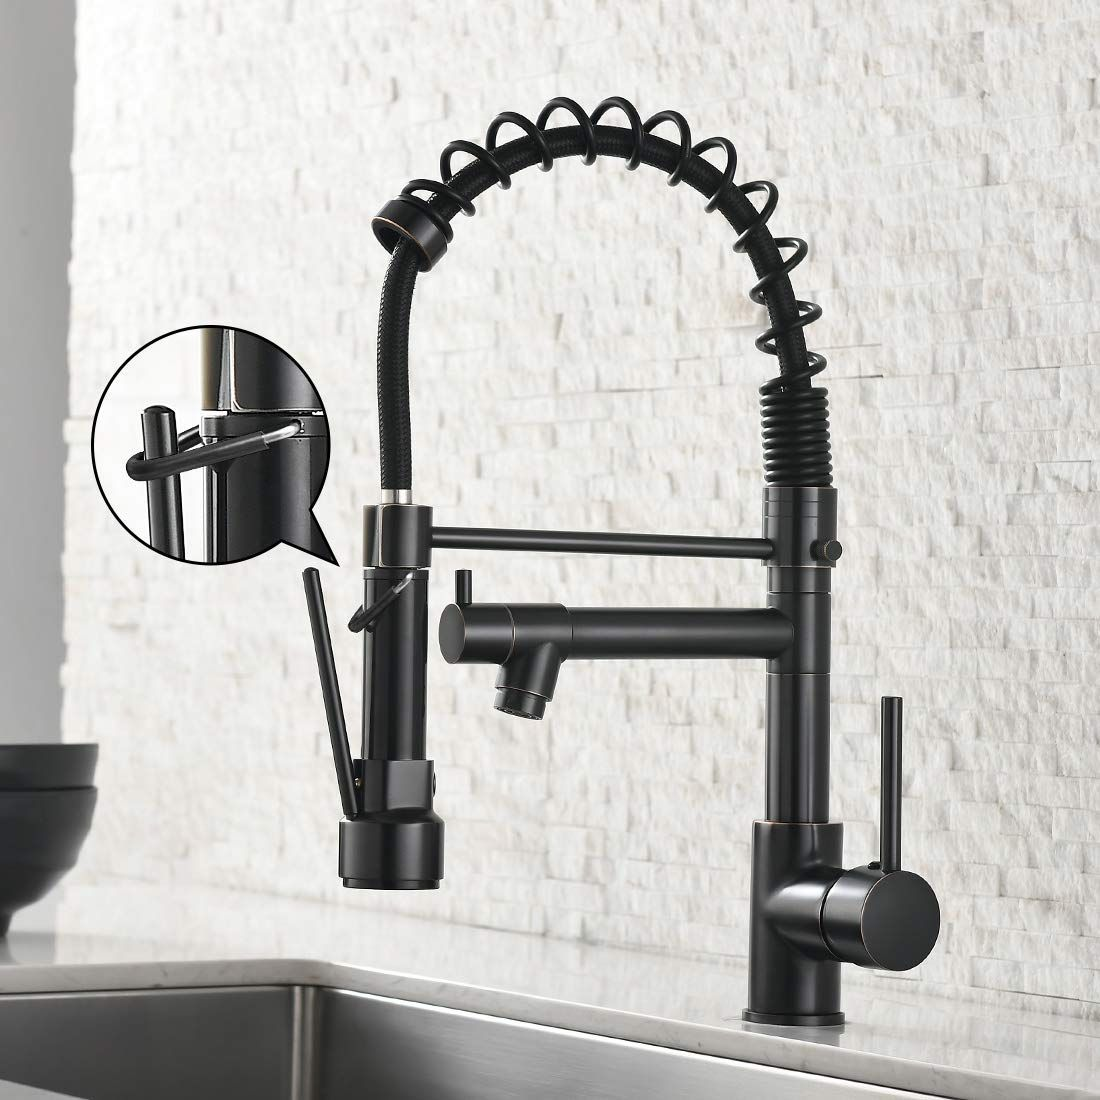 Spring Commercial Kitchen Sink Faucet,Modern Single Handle